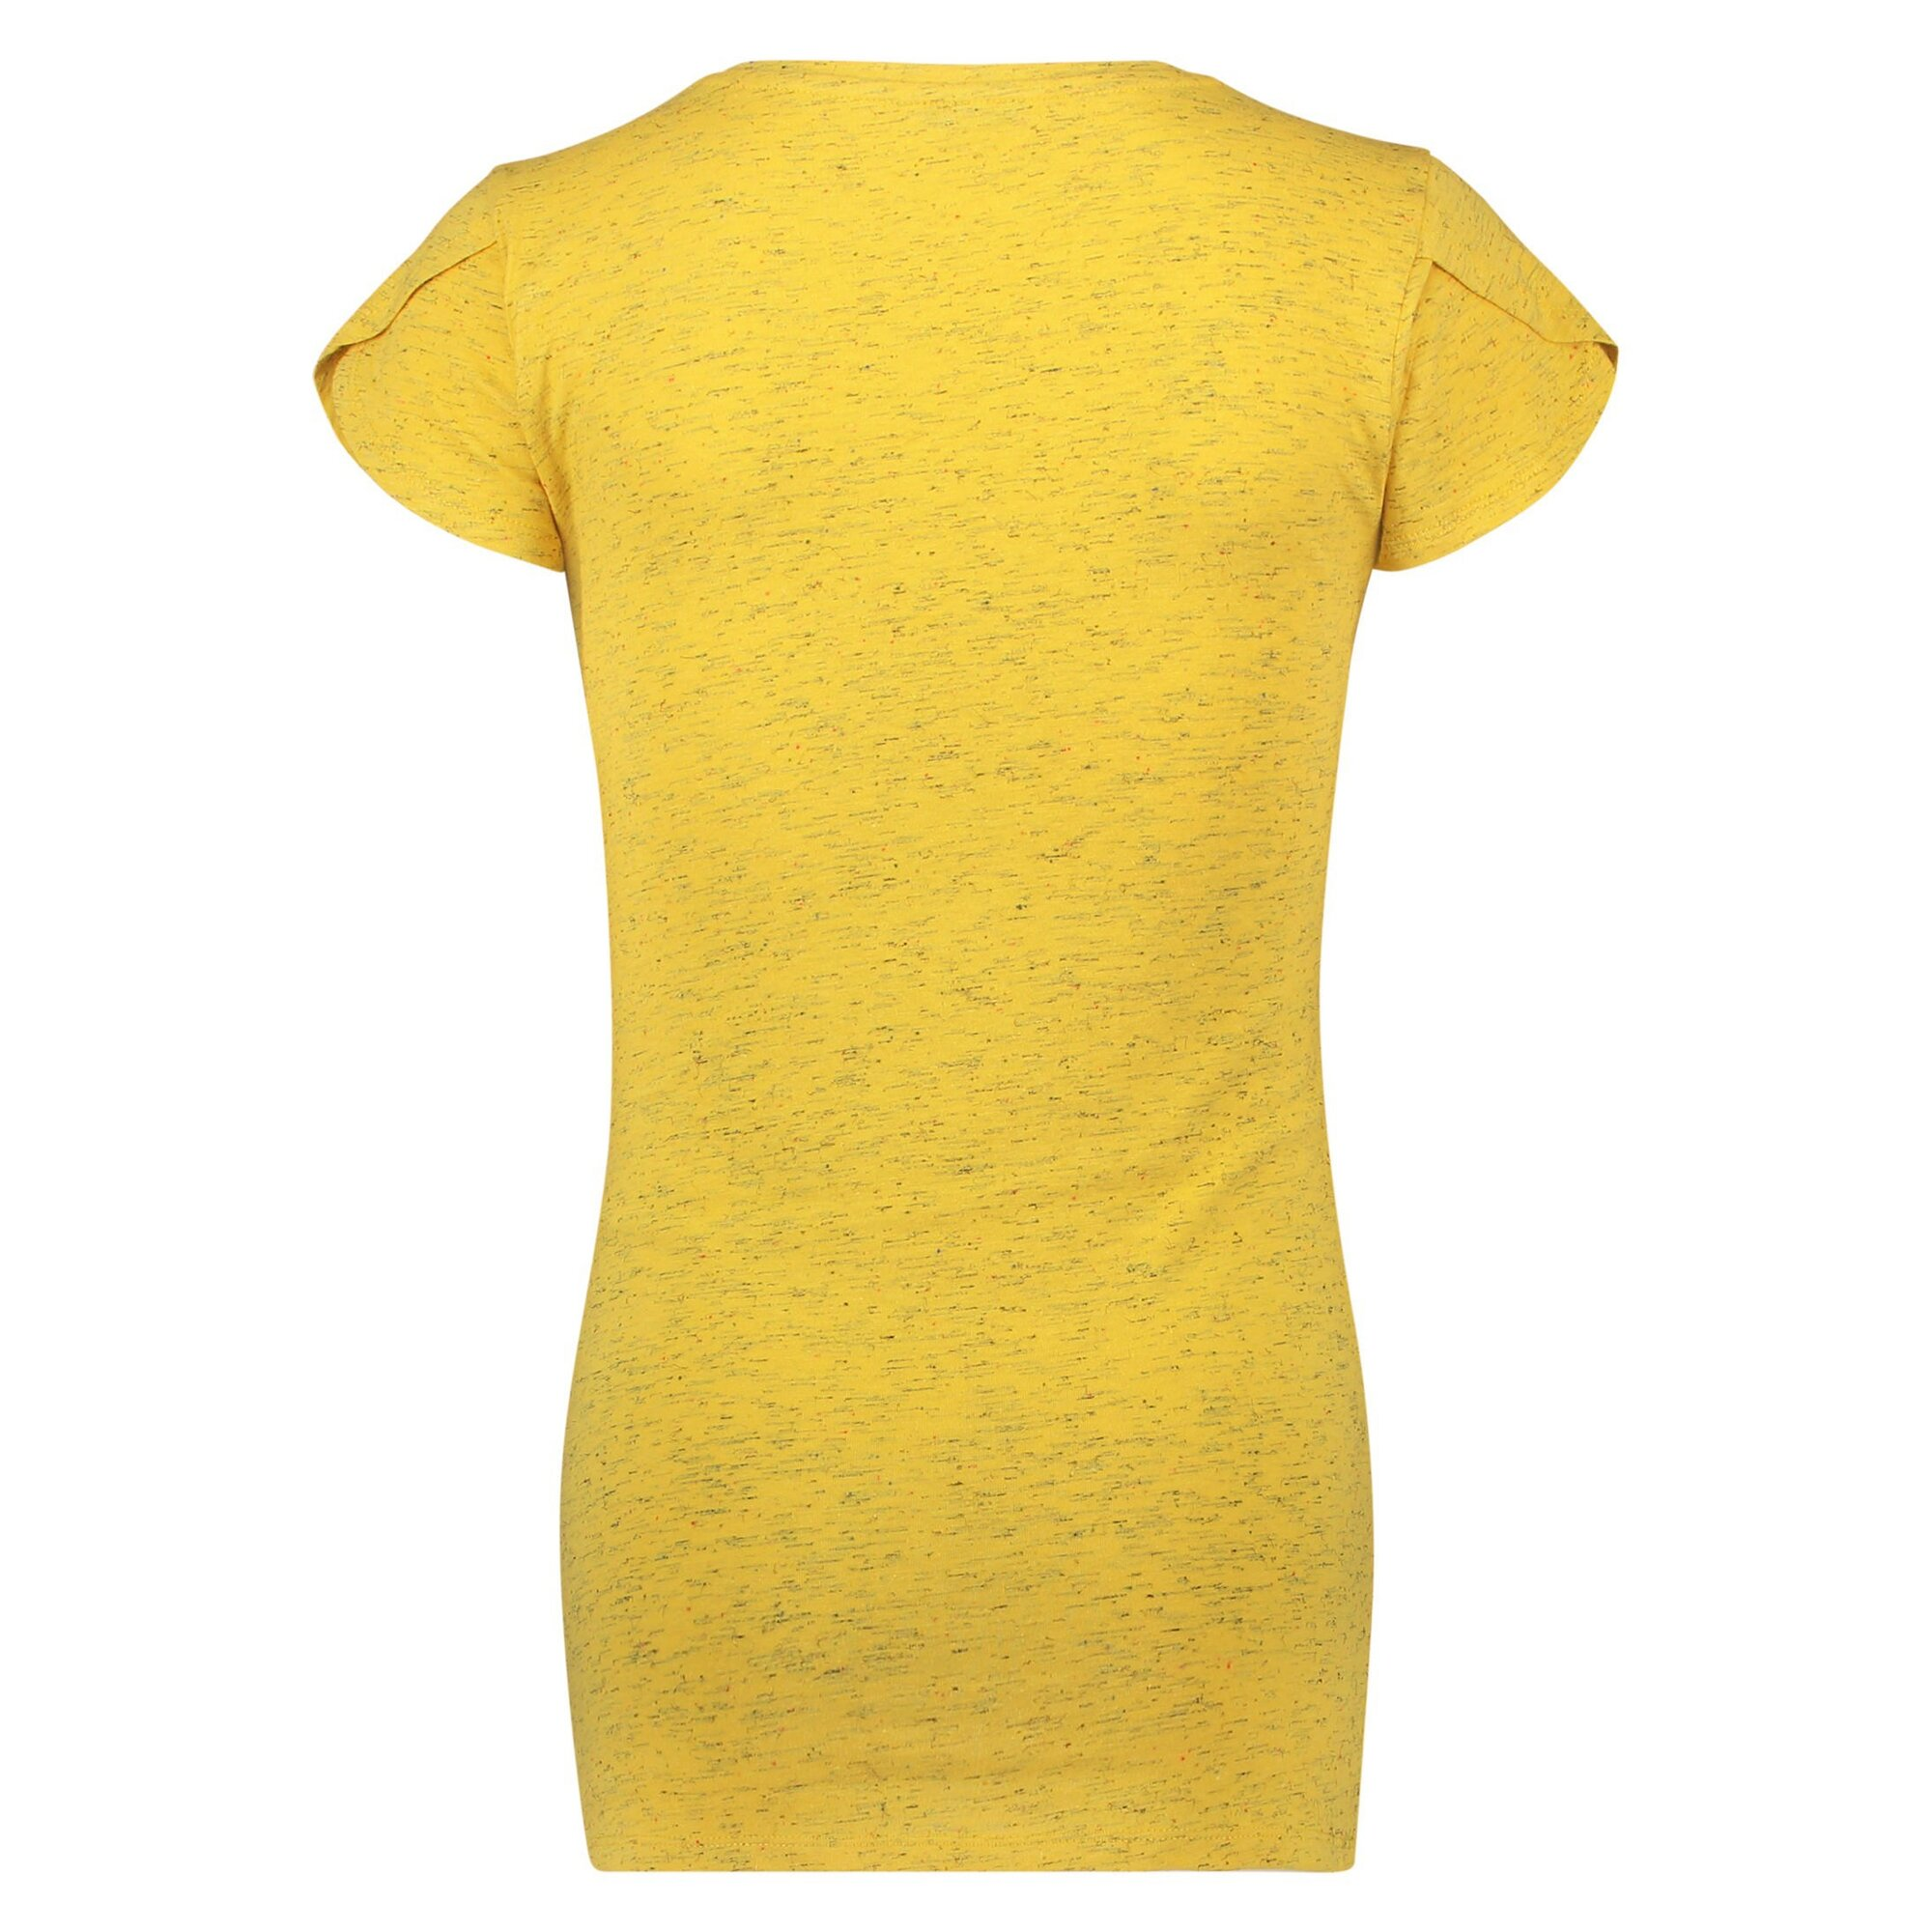 noppies-t-shirt-chantal, 14.99 EUR @ babywalz-de